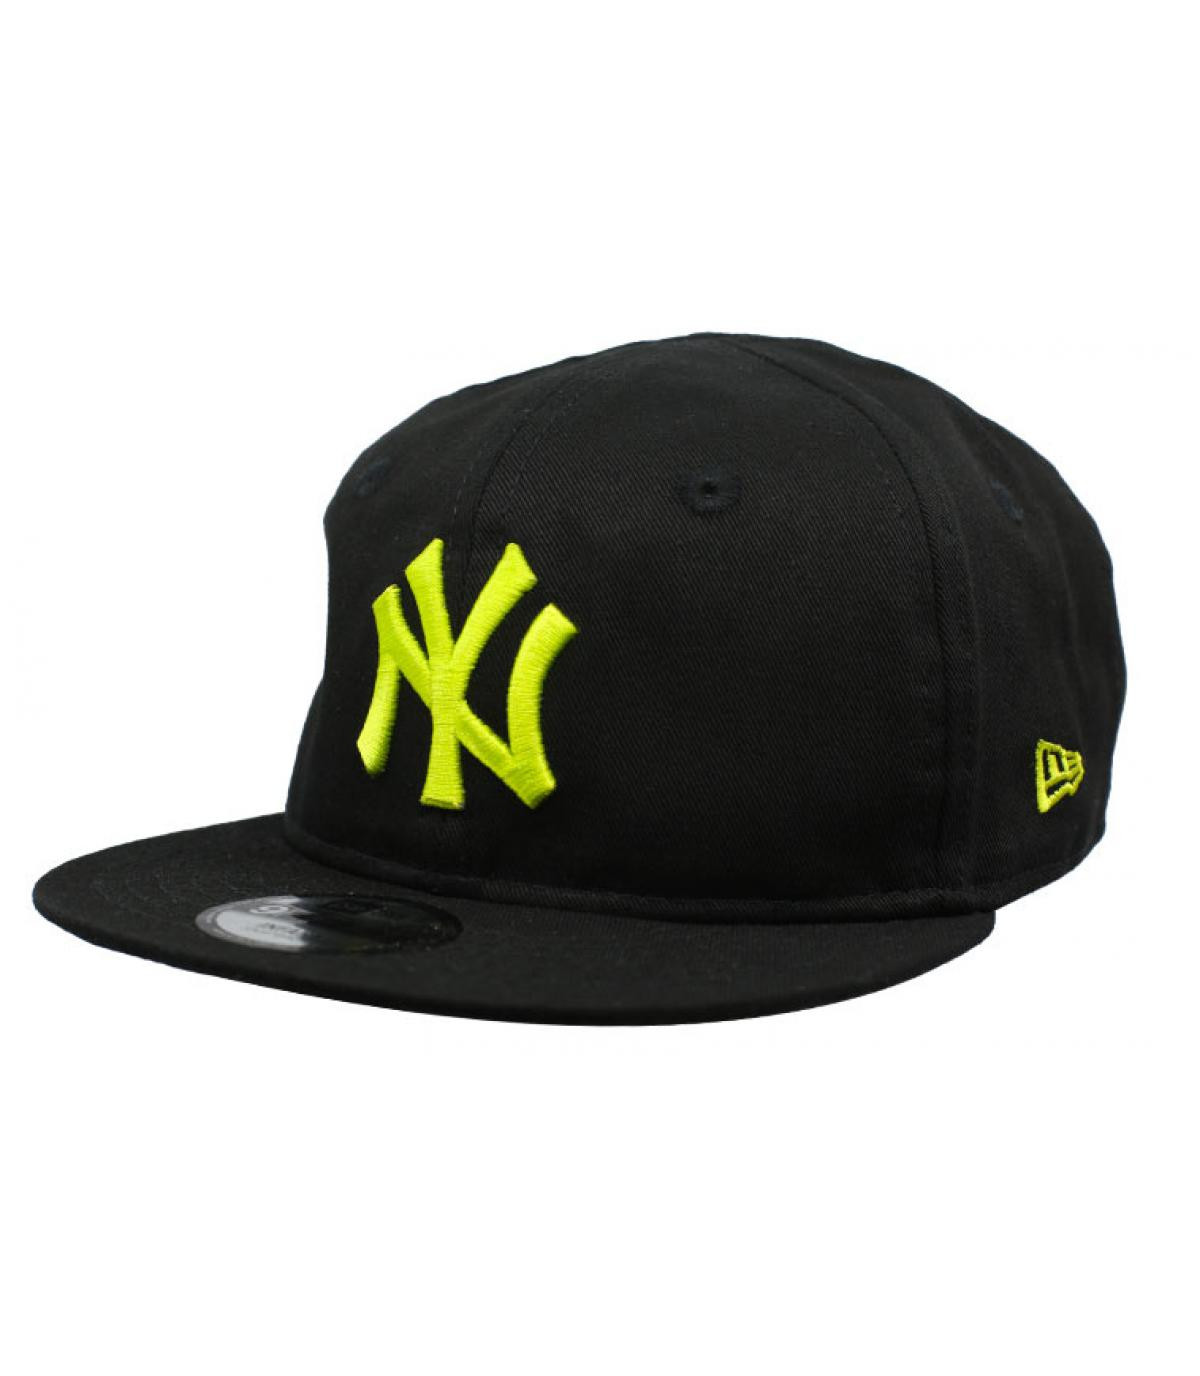 Details Baby League Ess NY 9Fifty black cyber yellow - afbeeling 2